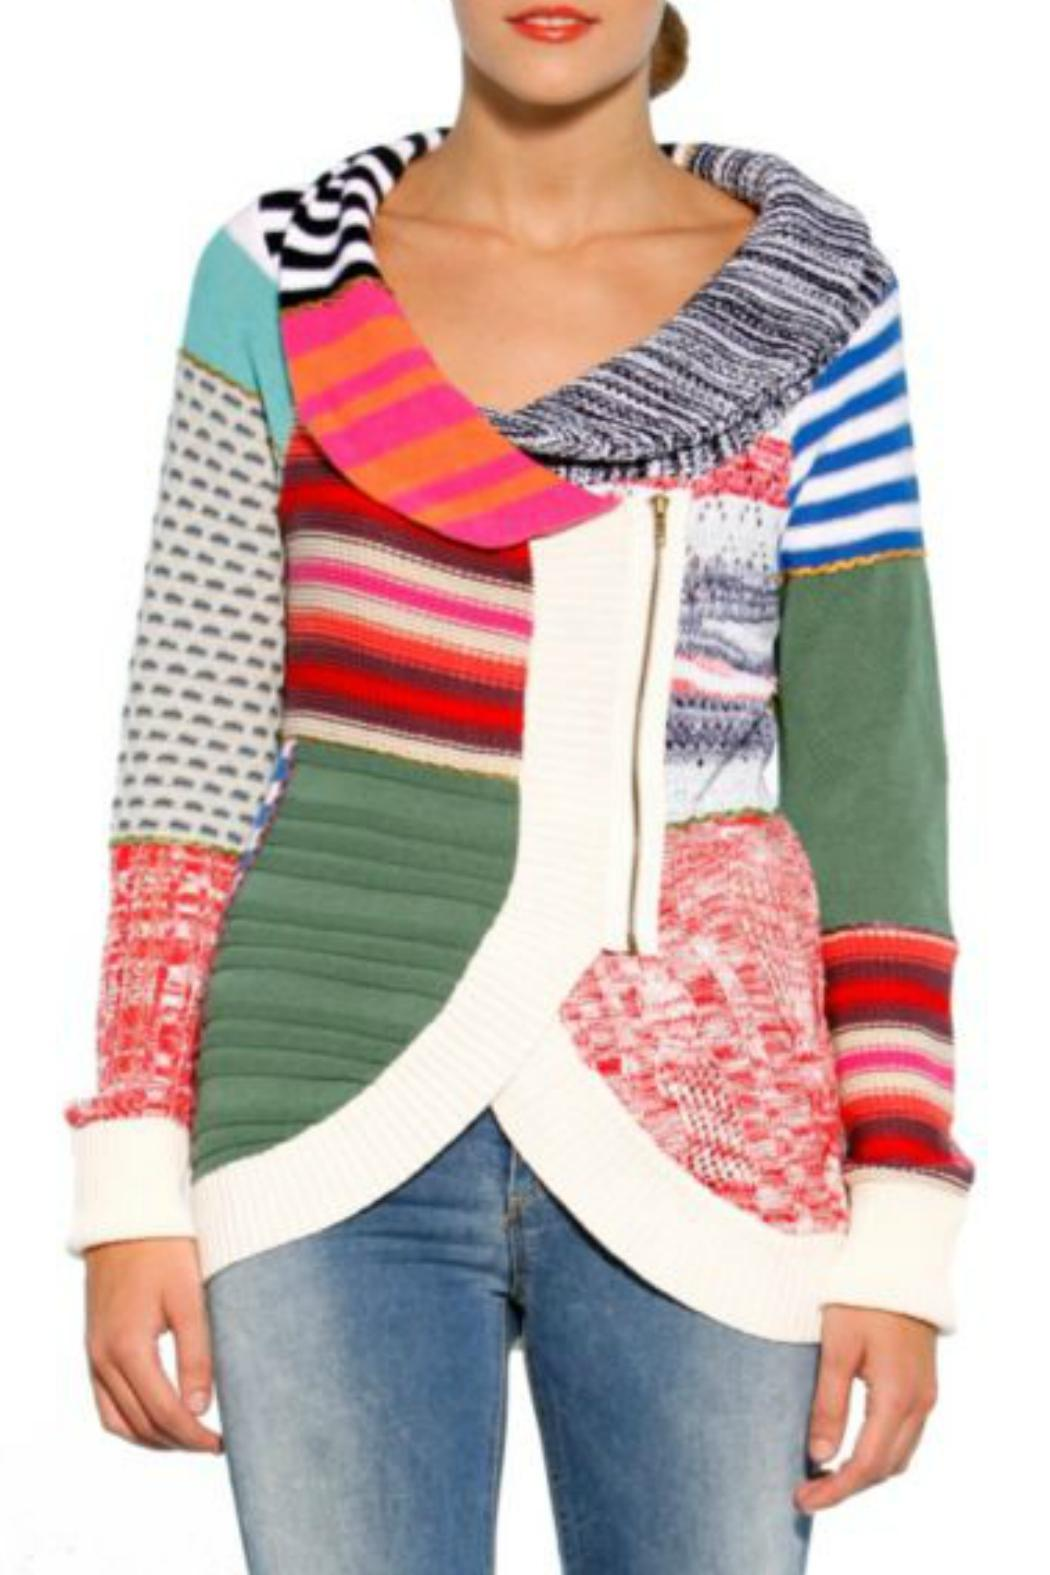 By Hawaii Hurricane Pattern Limited Sweater From Desigual Multi UXnx6